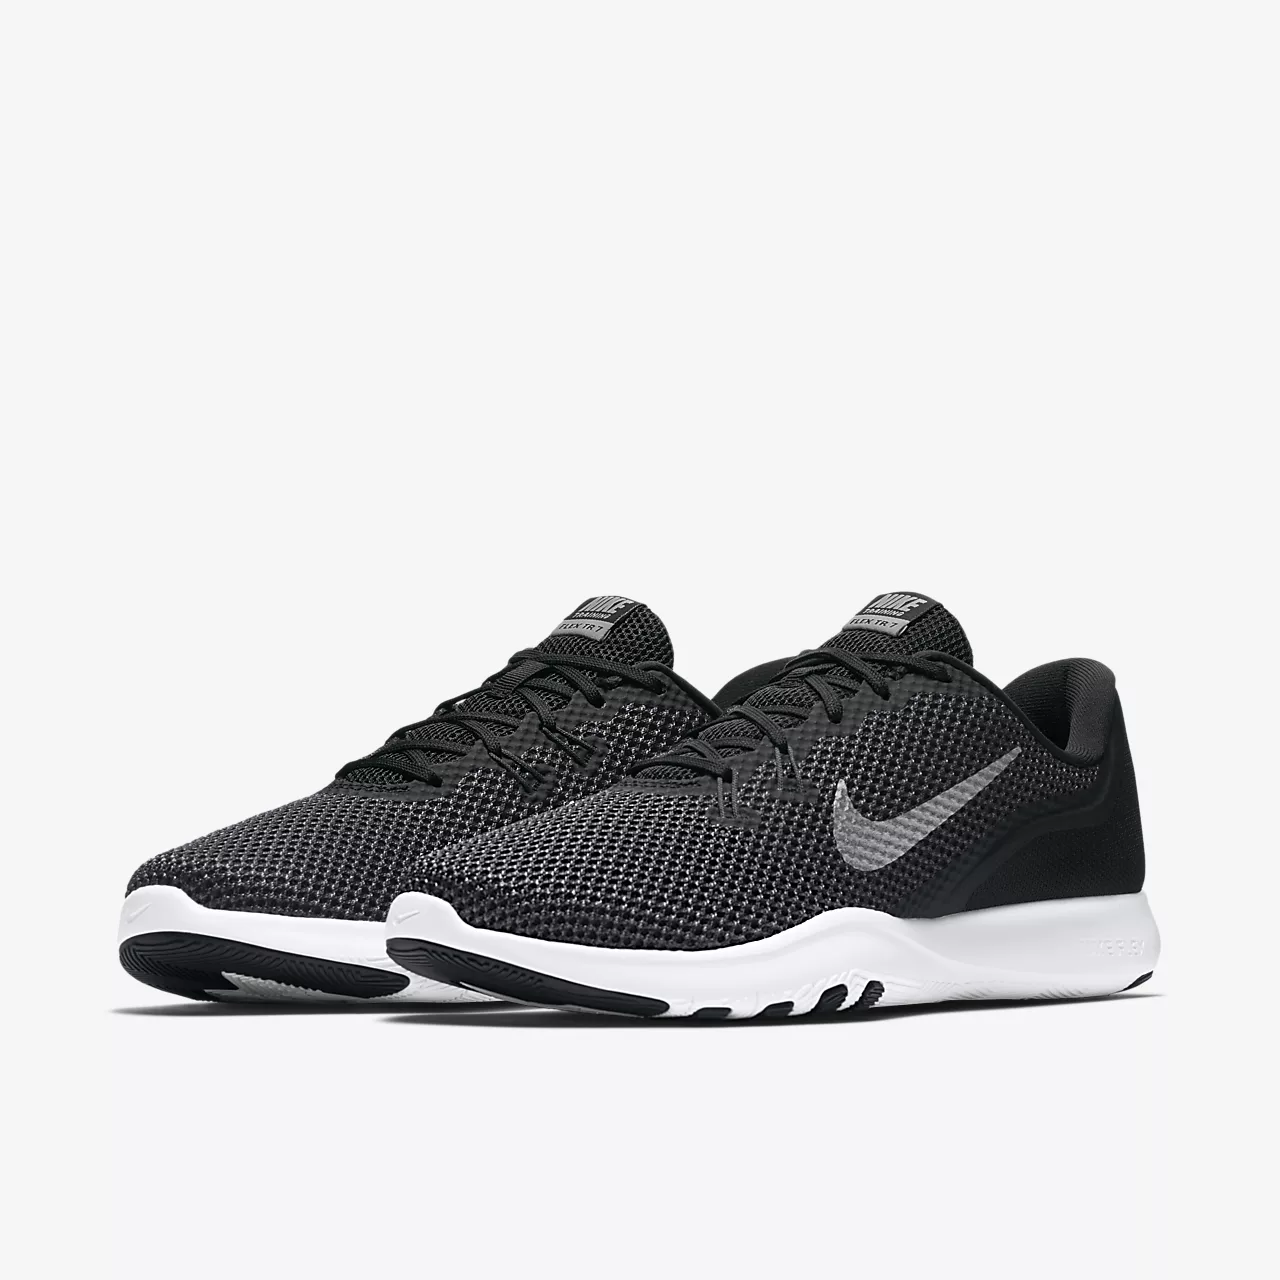 유럽직배송 나이키 NIKE Nike Flex Trainer 7 Women's Gym/Dance/Aerobics Shoe 898479-001